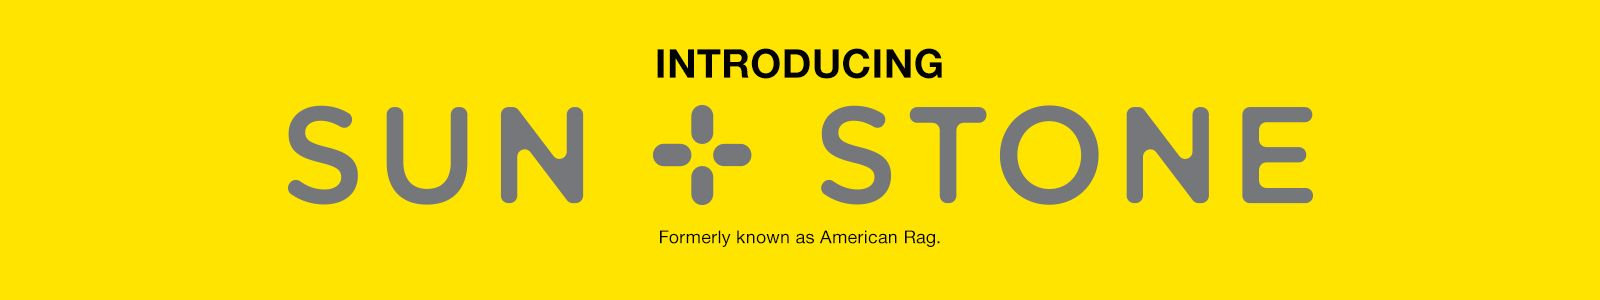 Introducing, Sun Stone, Formerly known as America Rag